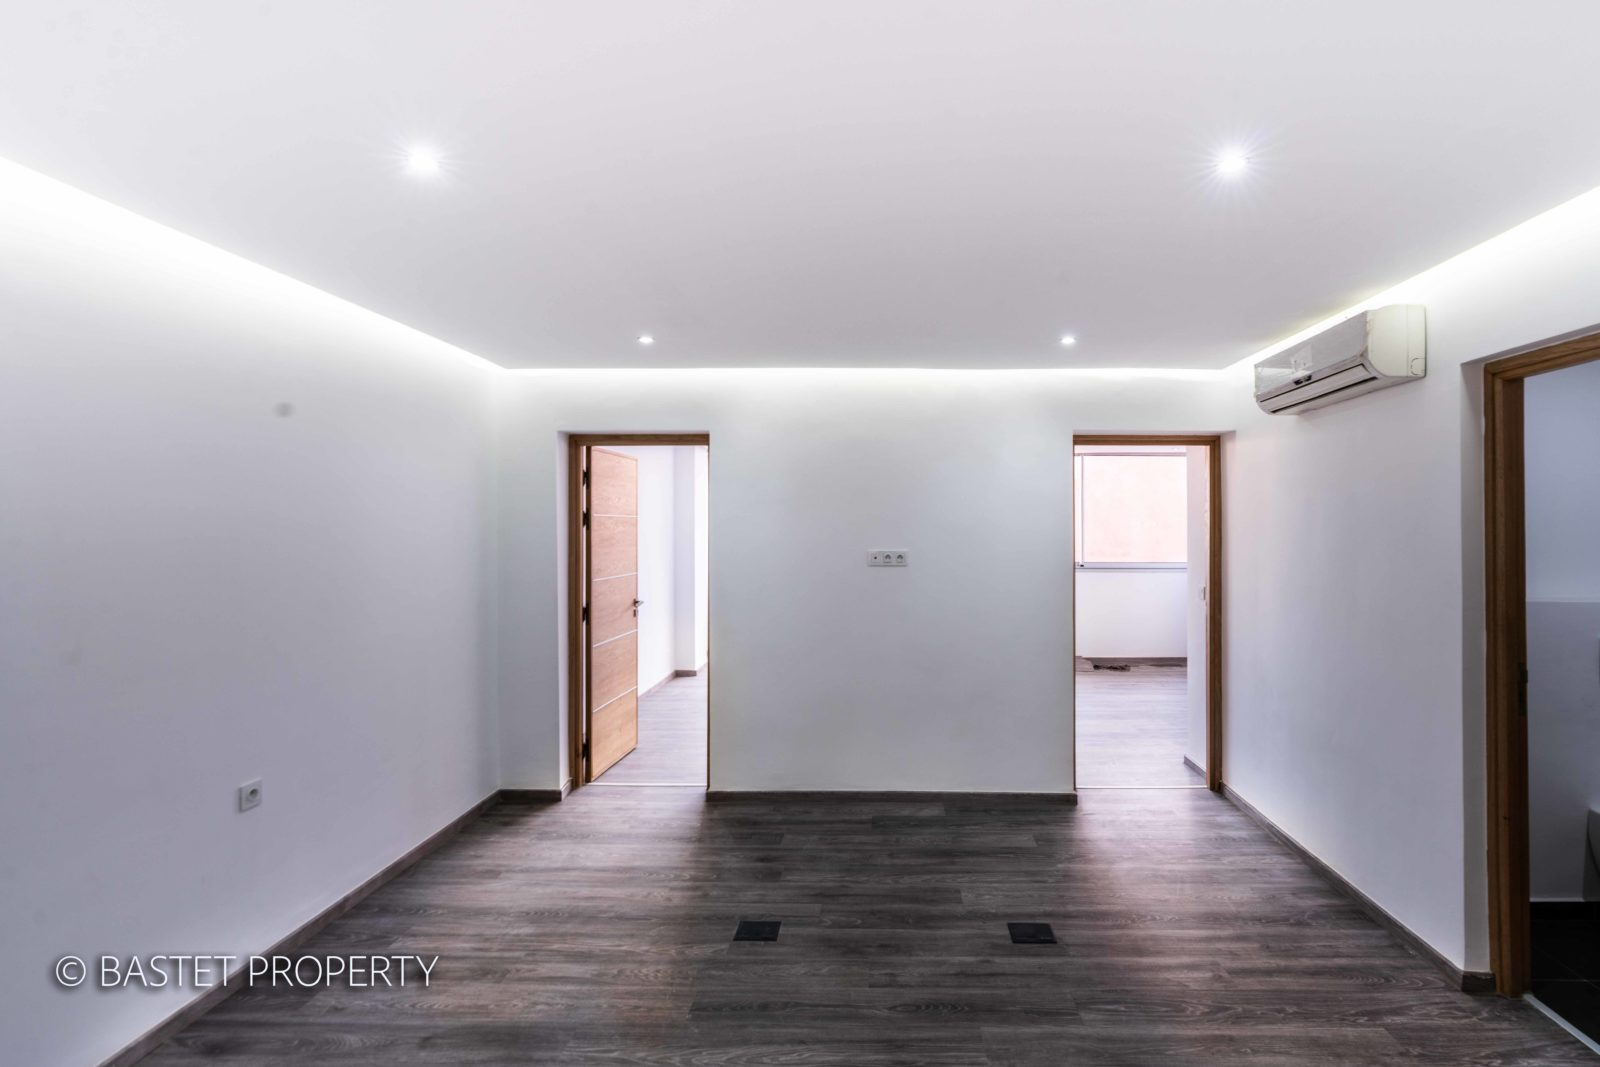 70 sqm Office to rent in Marrakech